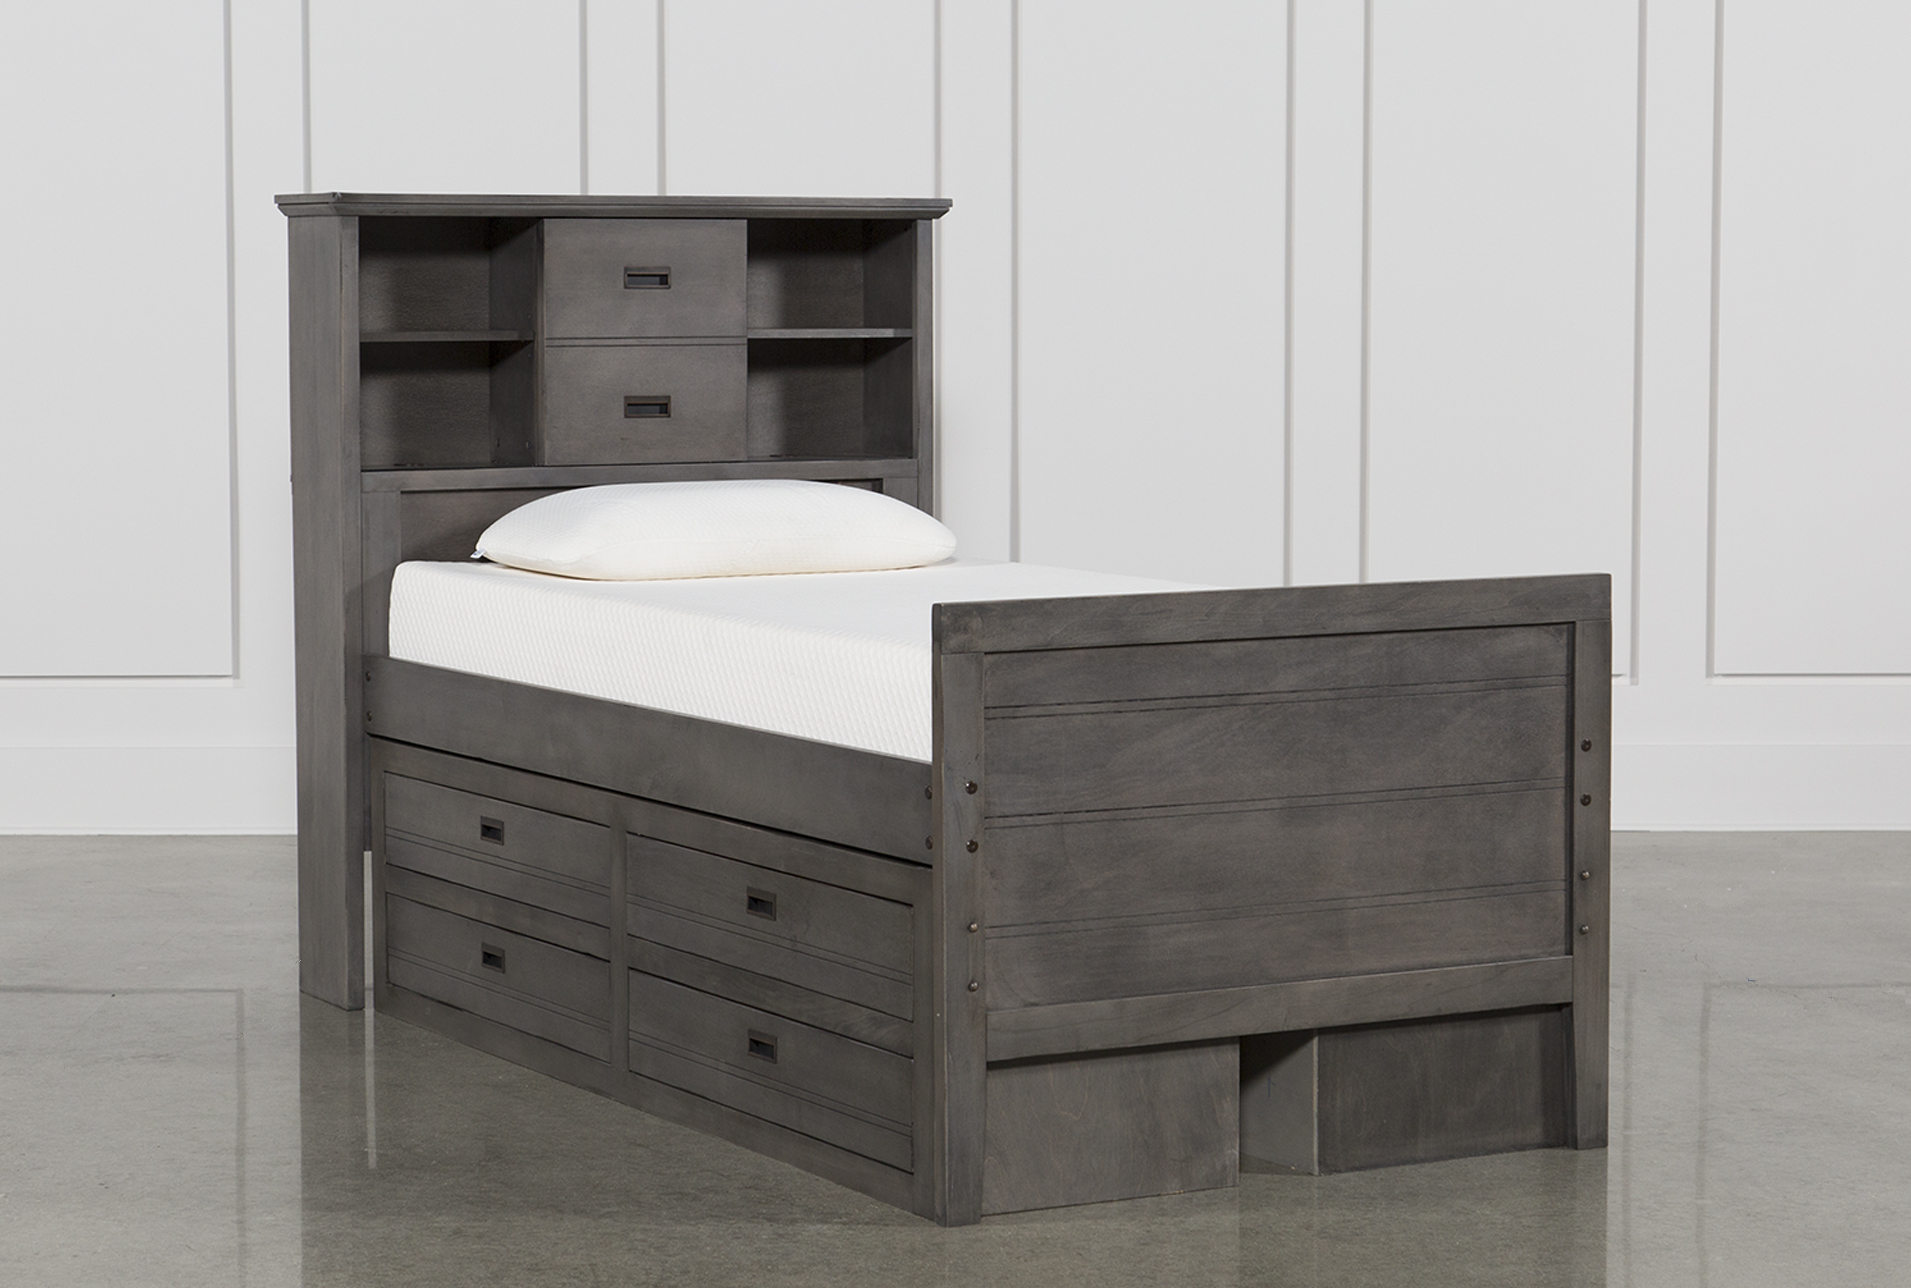 Genial Owen Grey Twin Bookcase Bed W/Double 4 Drawer Storage Unit (Qty: 1) Has  Been Successfully Added To Your Cart.